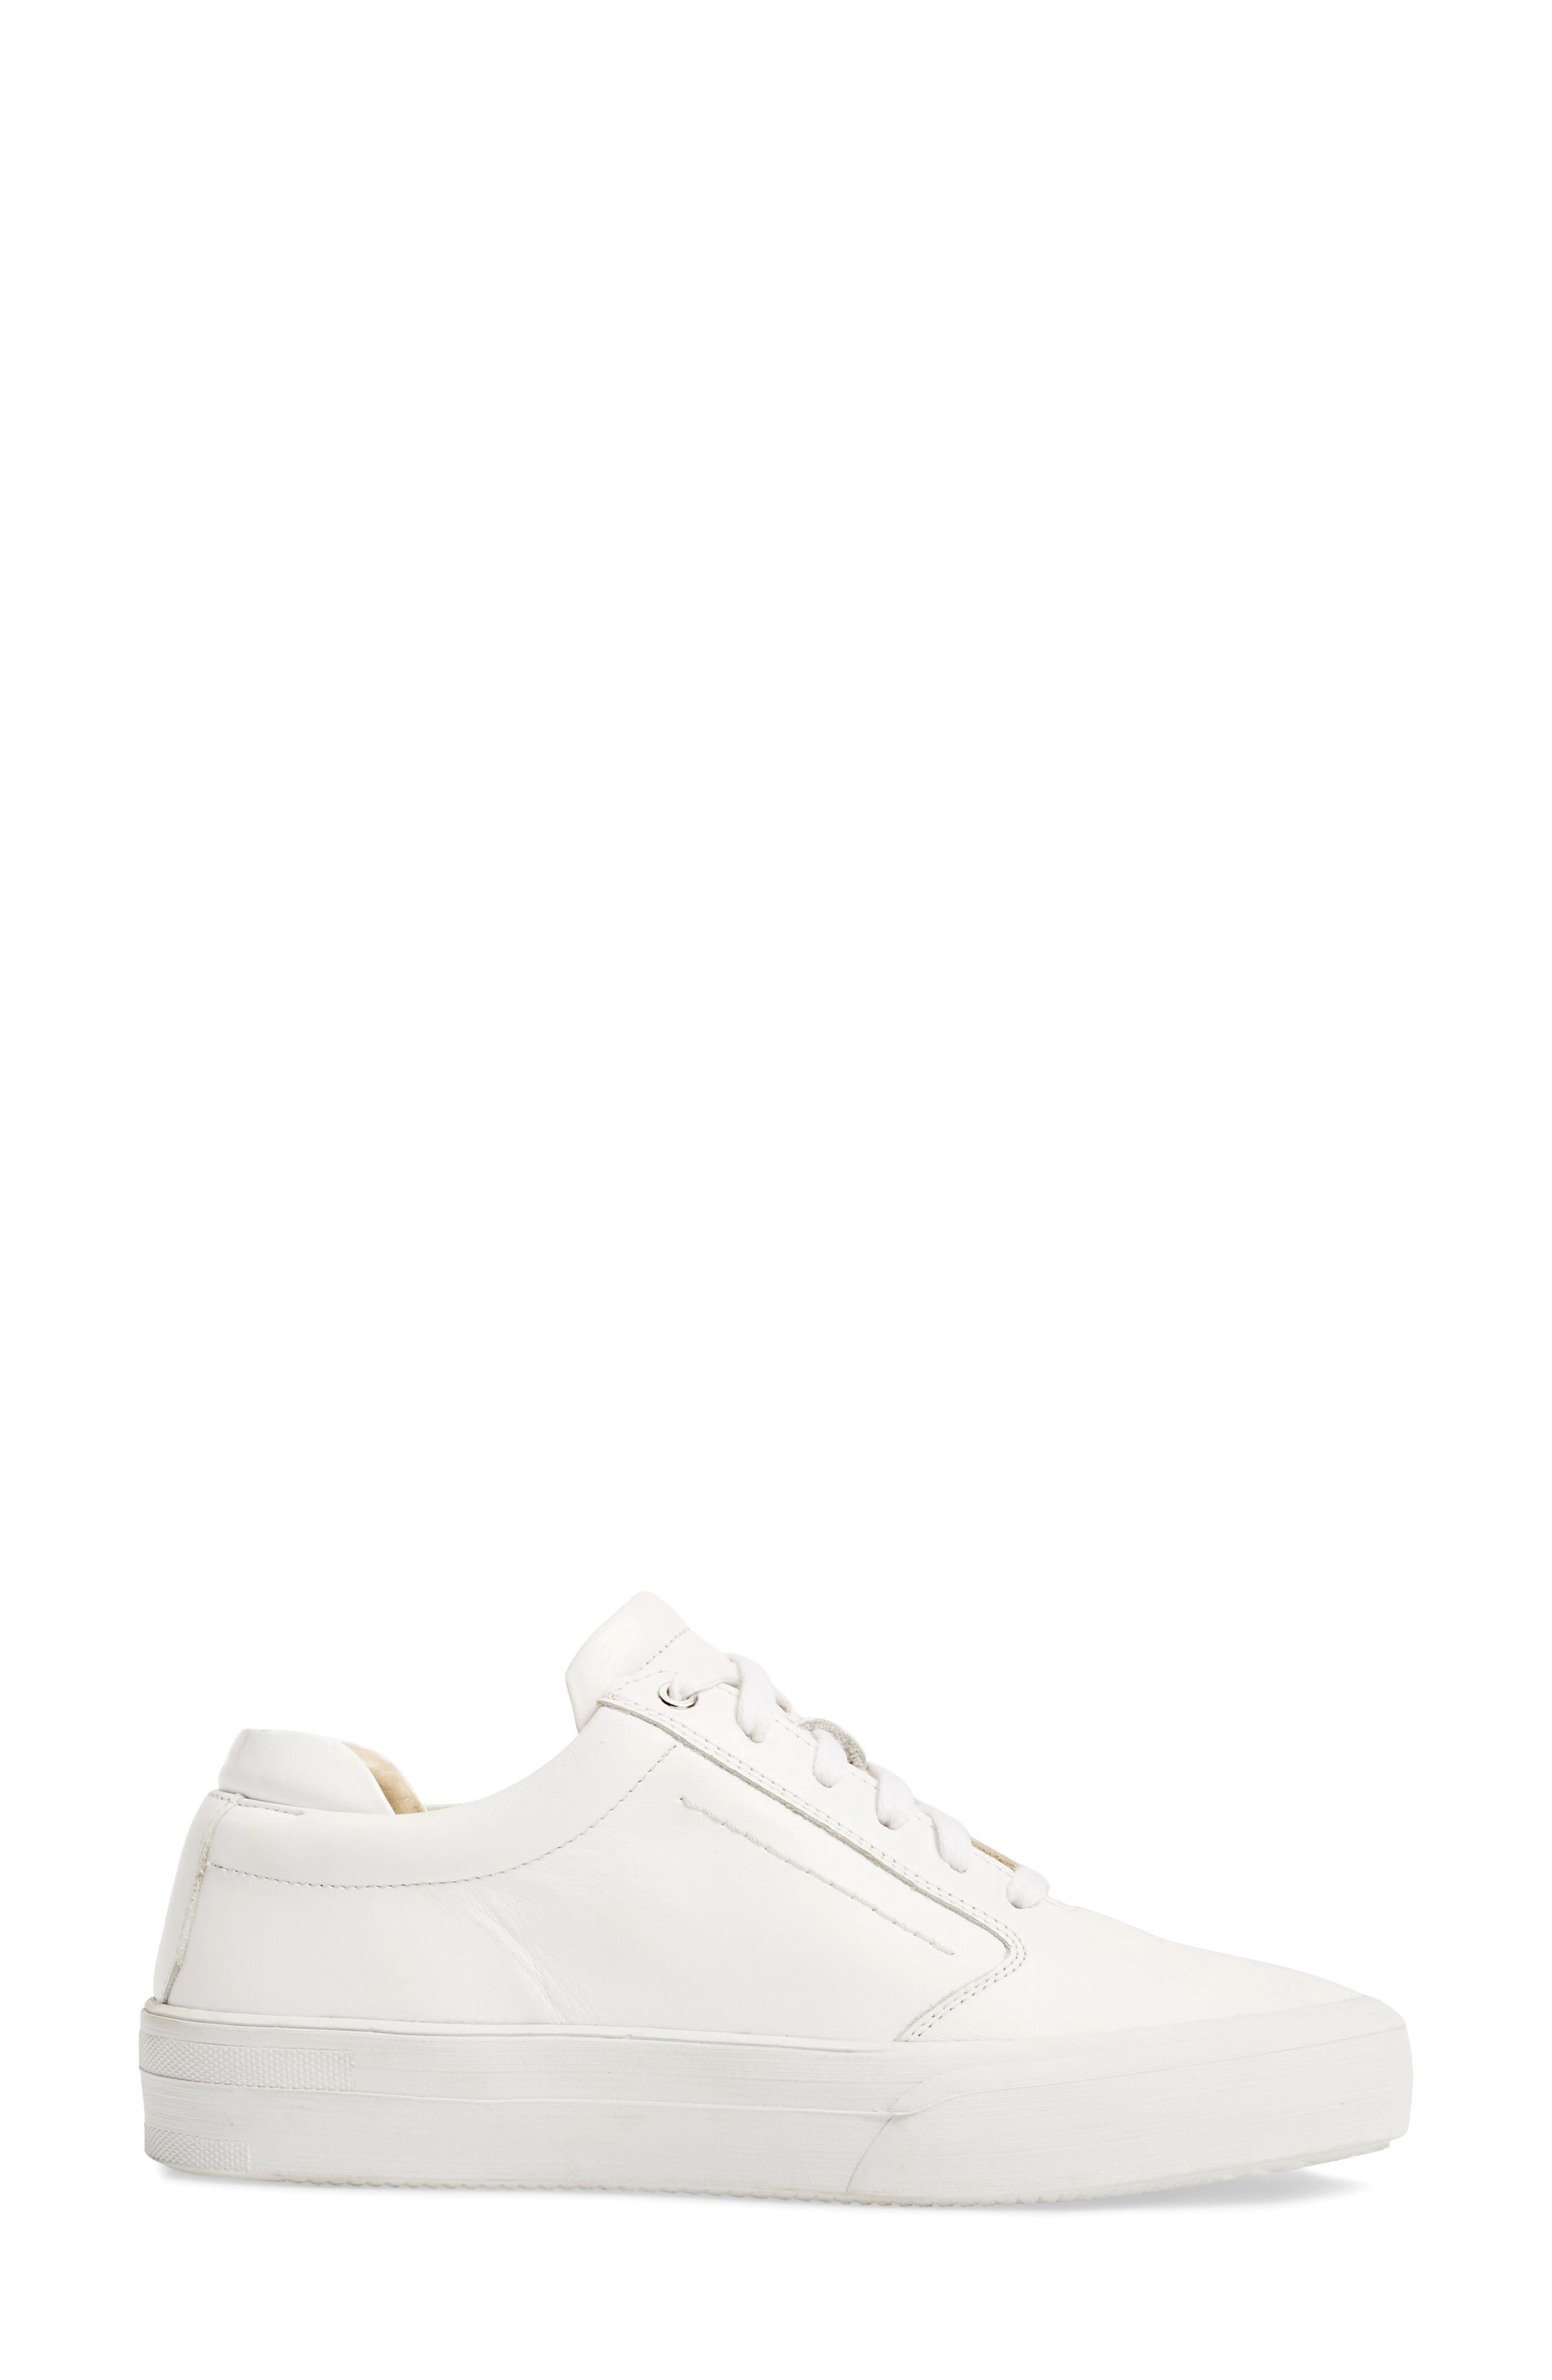 Lalibela Sneaker,                             Alternate thumbnail 3, color,                             WHITE/PATENT WHITE